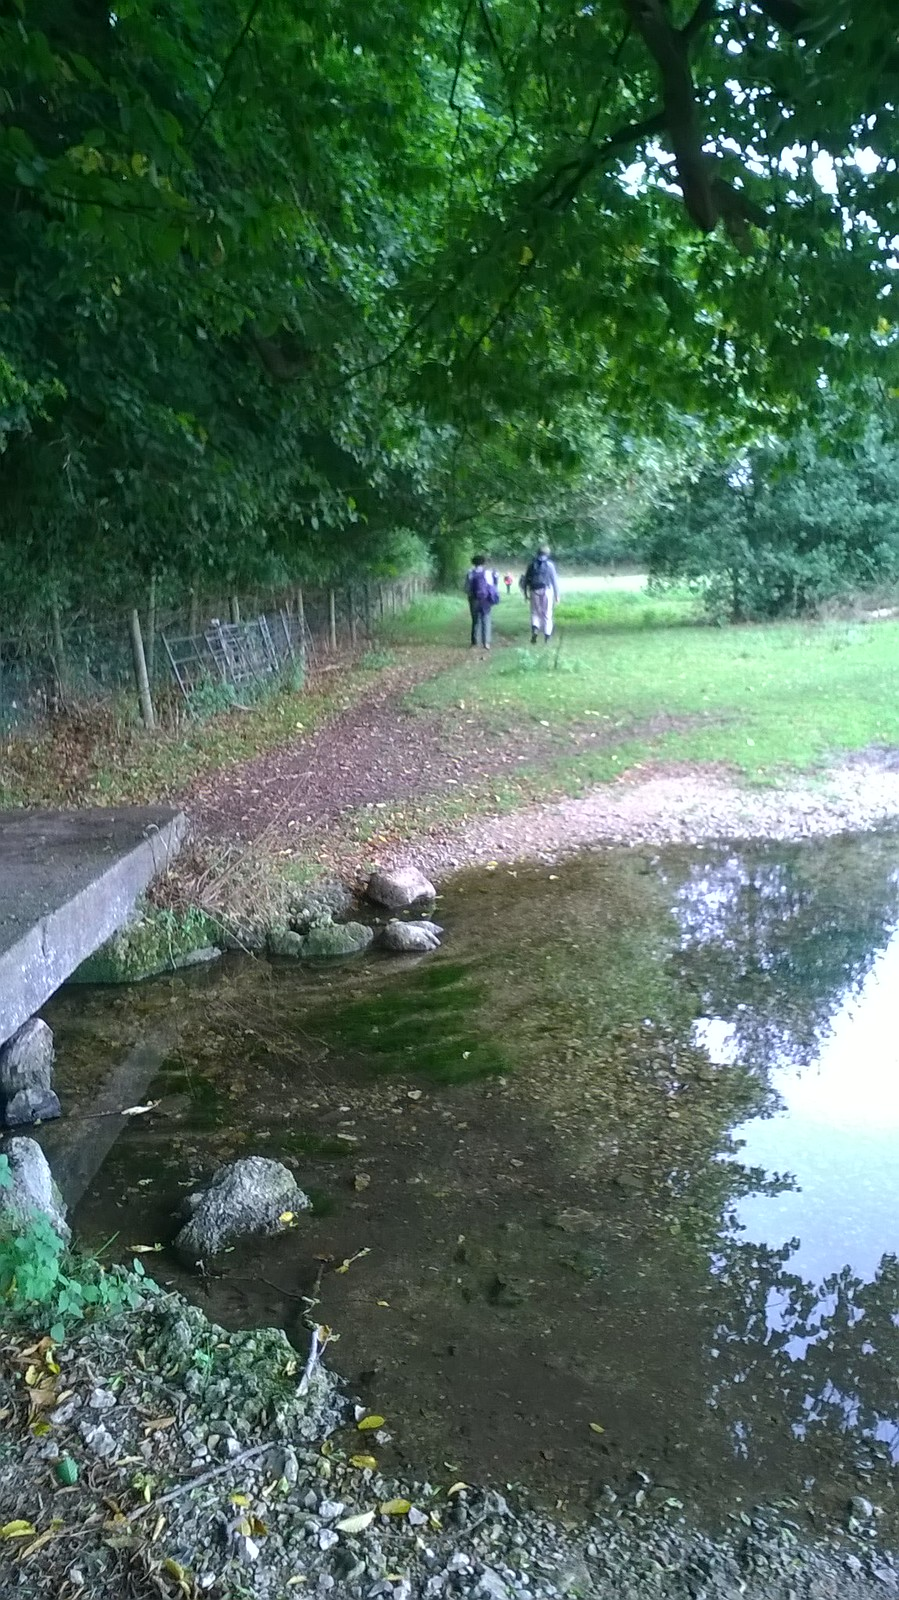 The way across stone walkway over stream where the horses drink - near Little Missenden